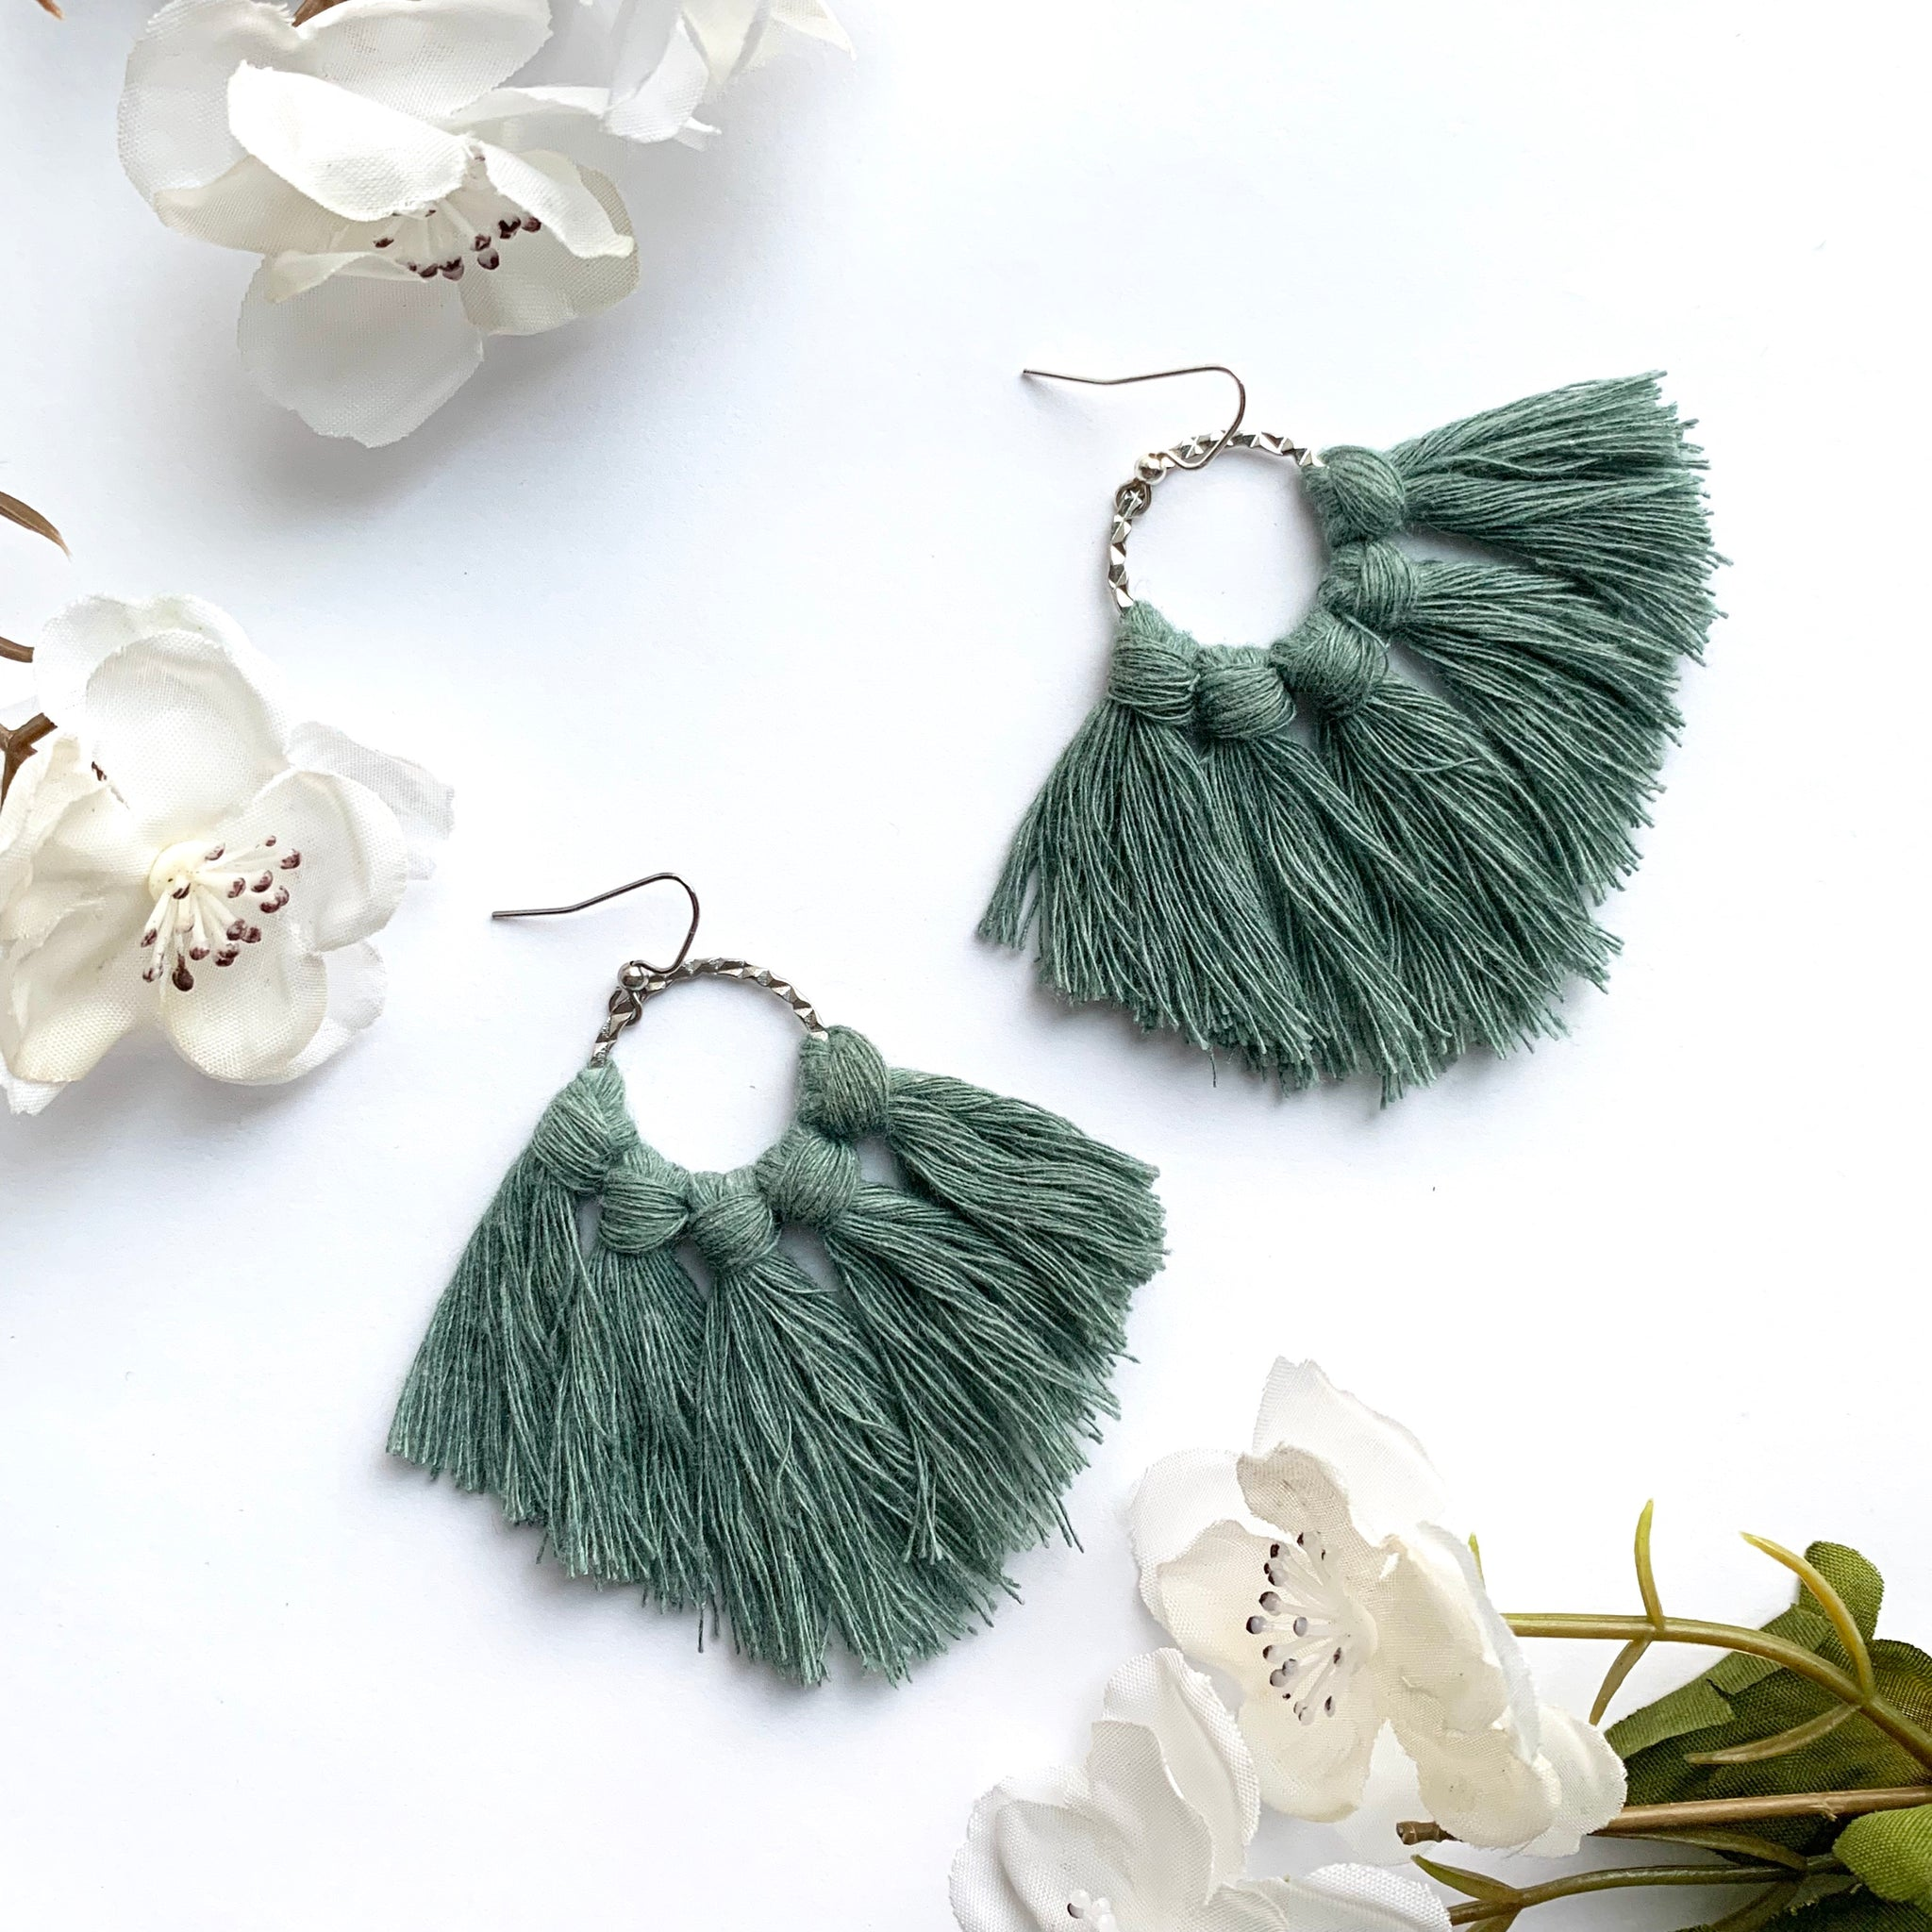 Dark Teal Macrame Earrings